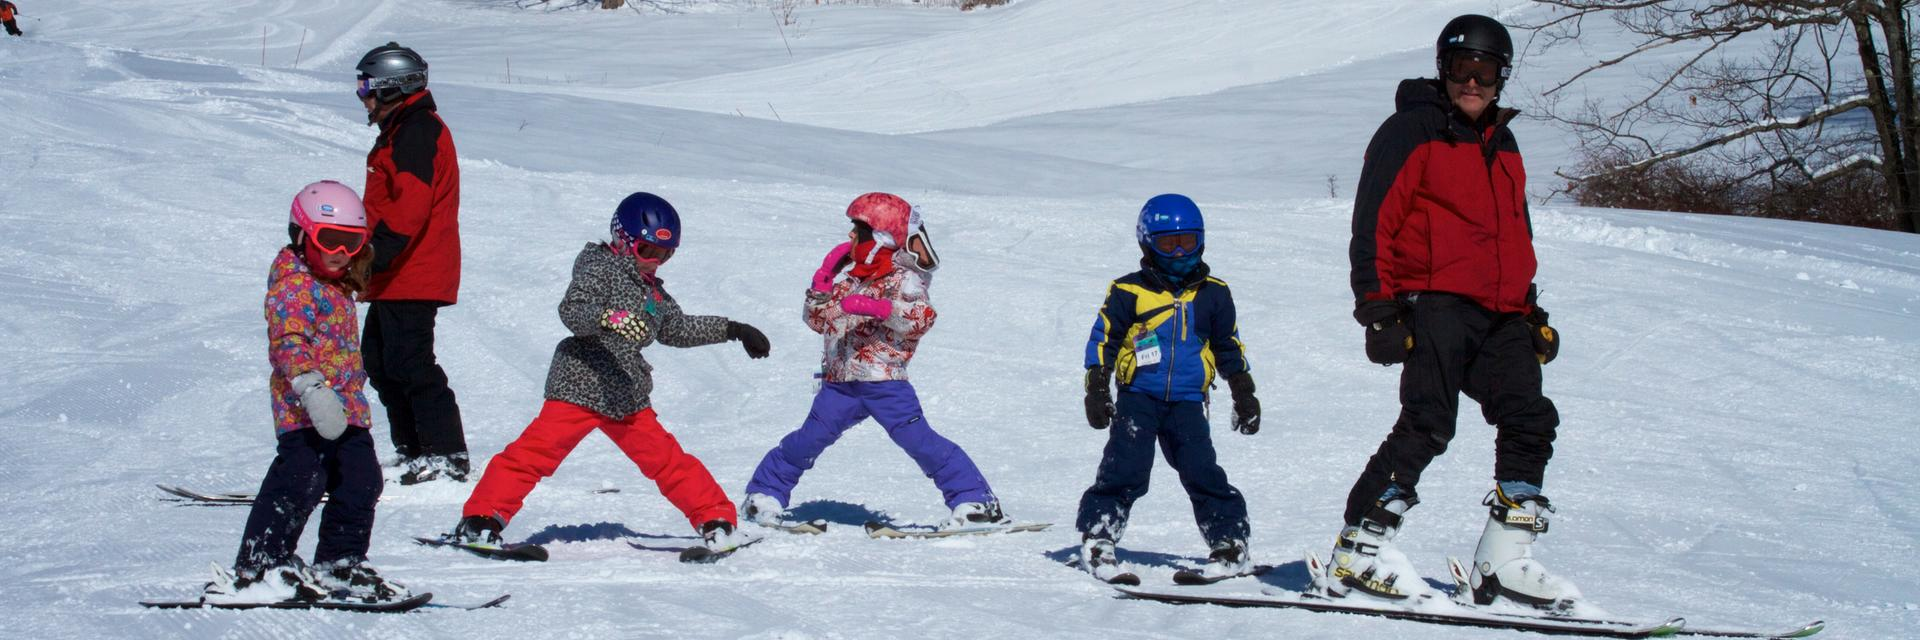 Ski School And Instruction The Quechee Club